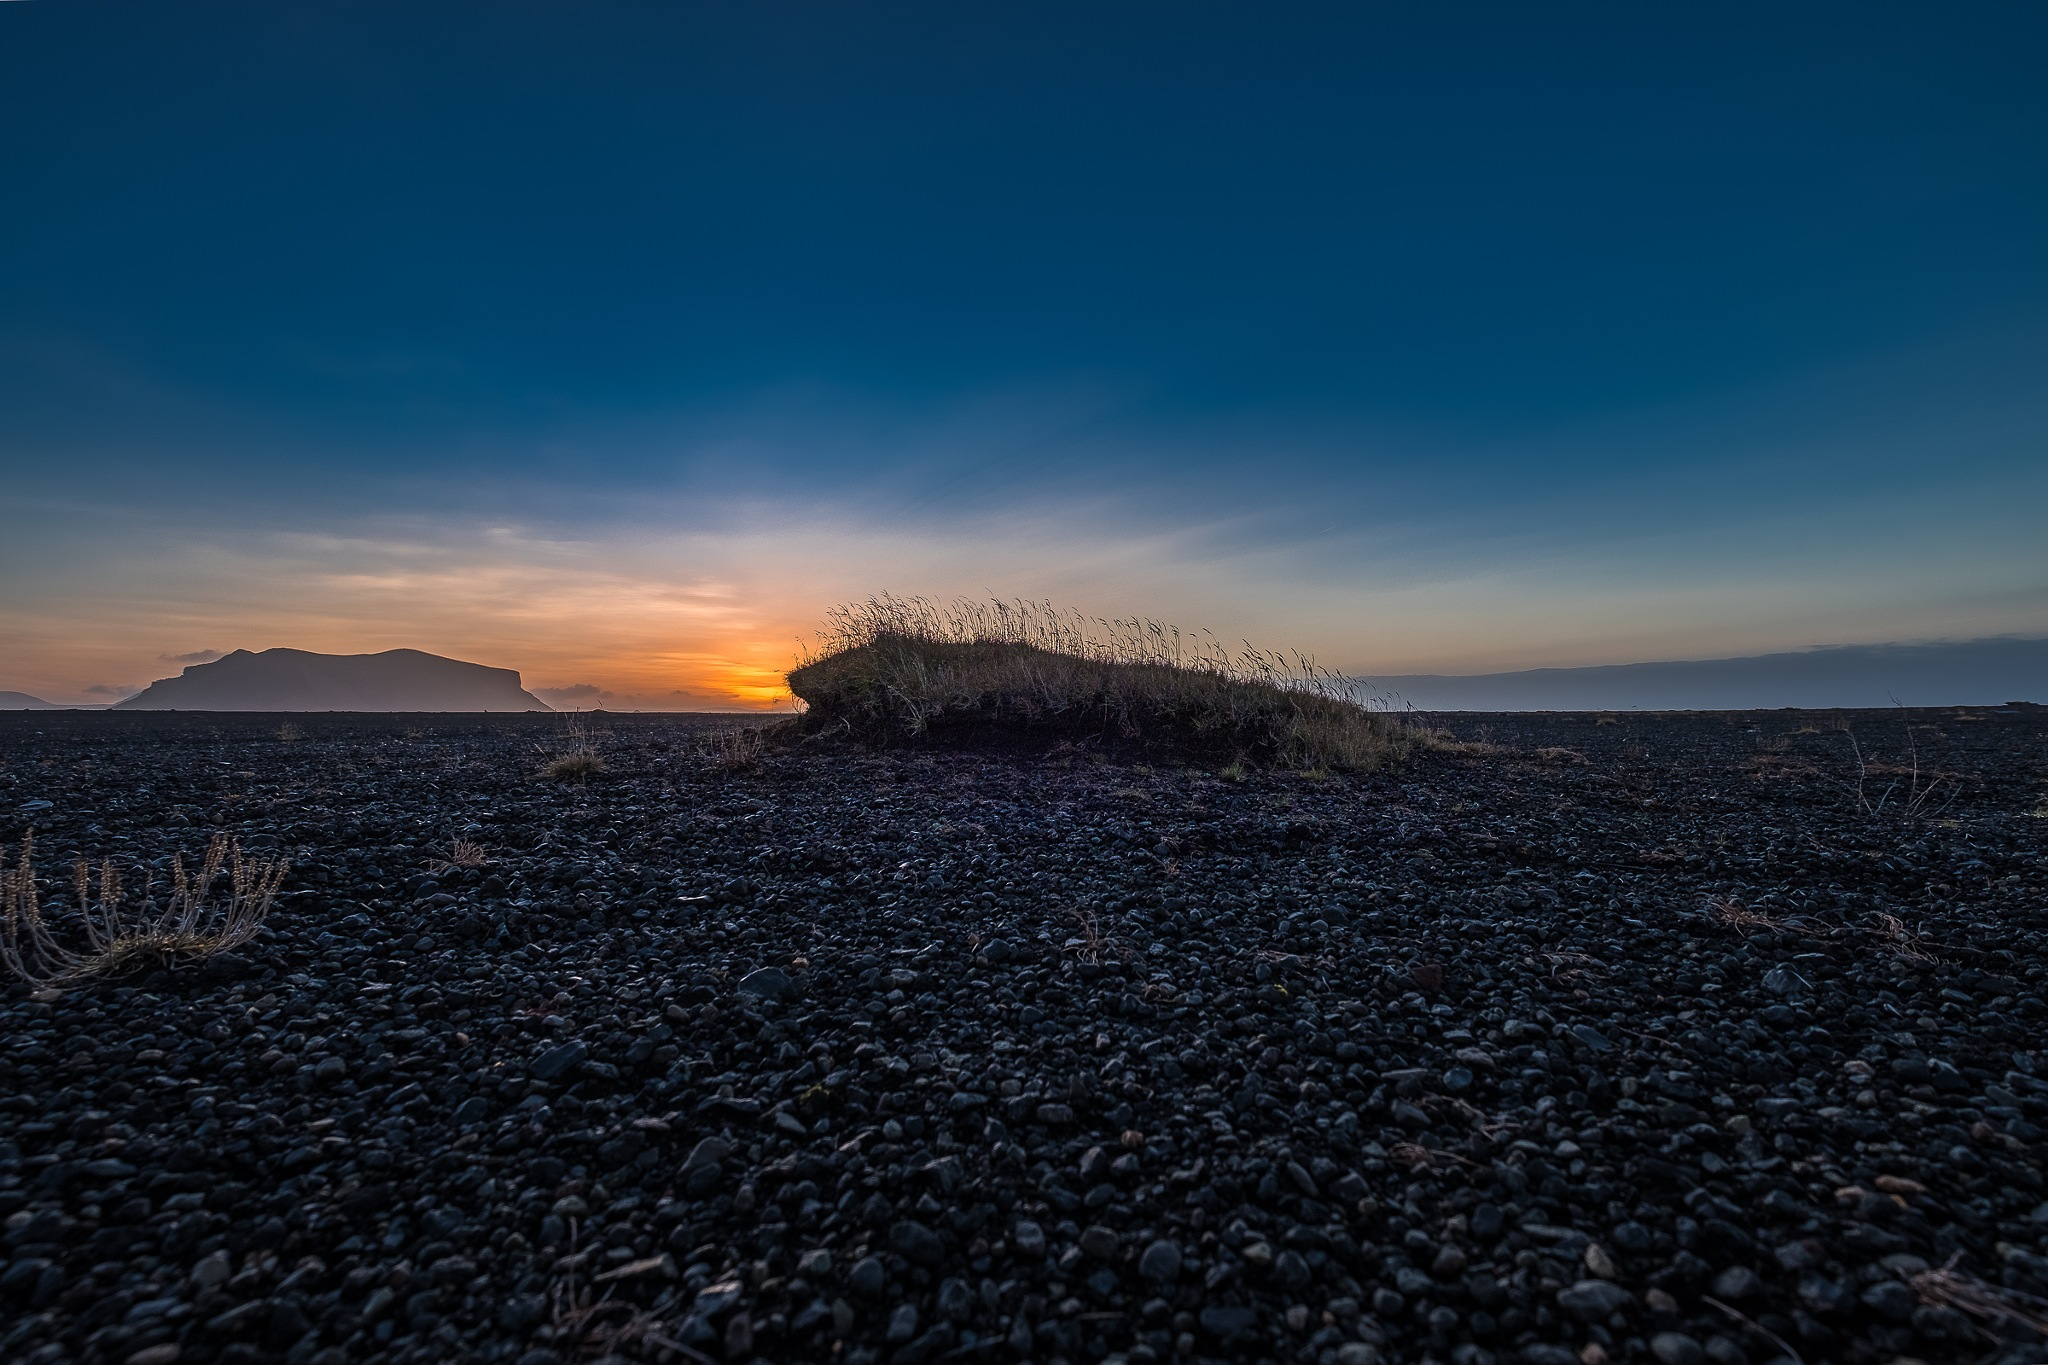 Sunrise in Iceland by Hakan Cacharel